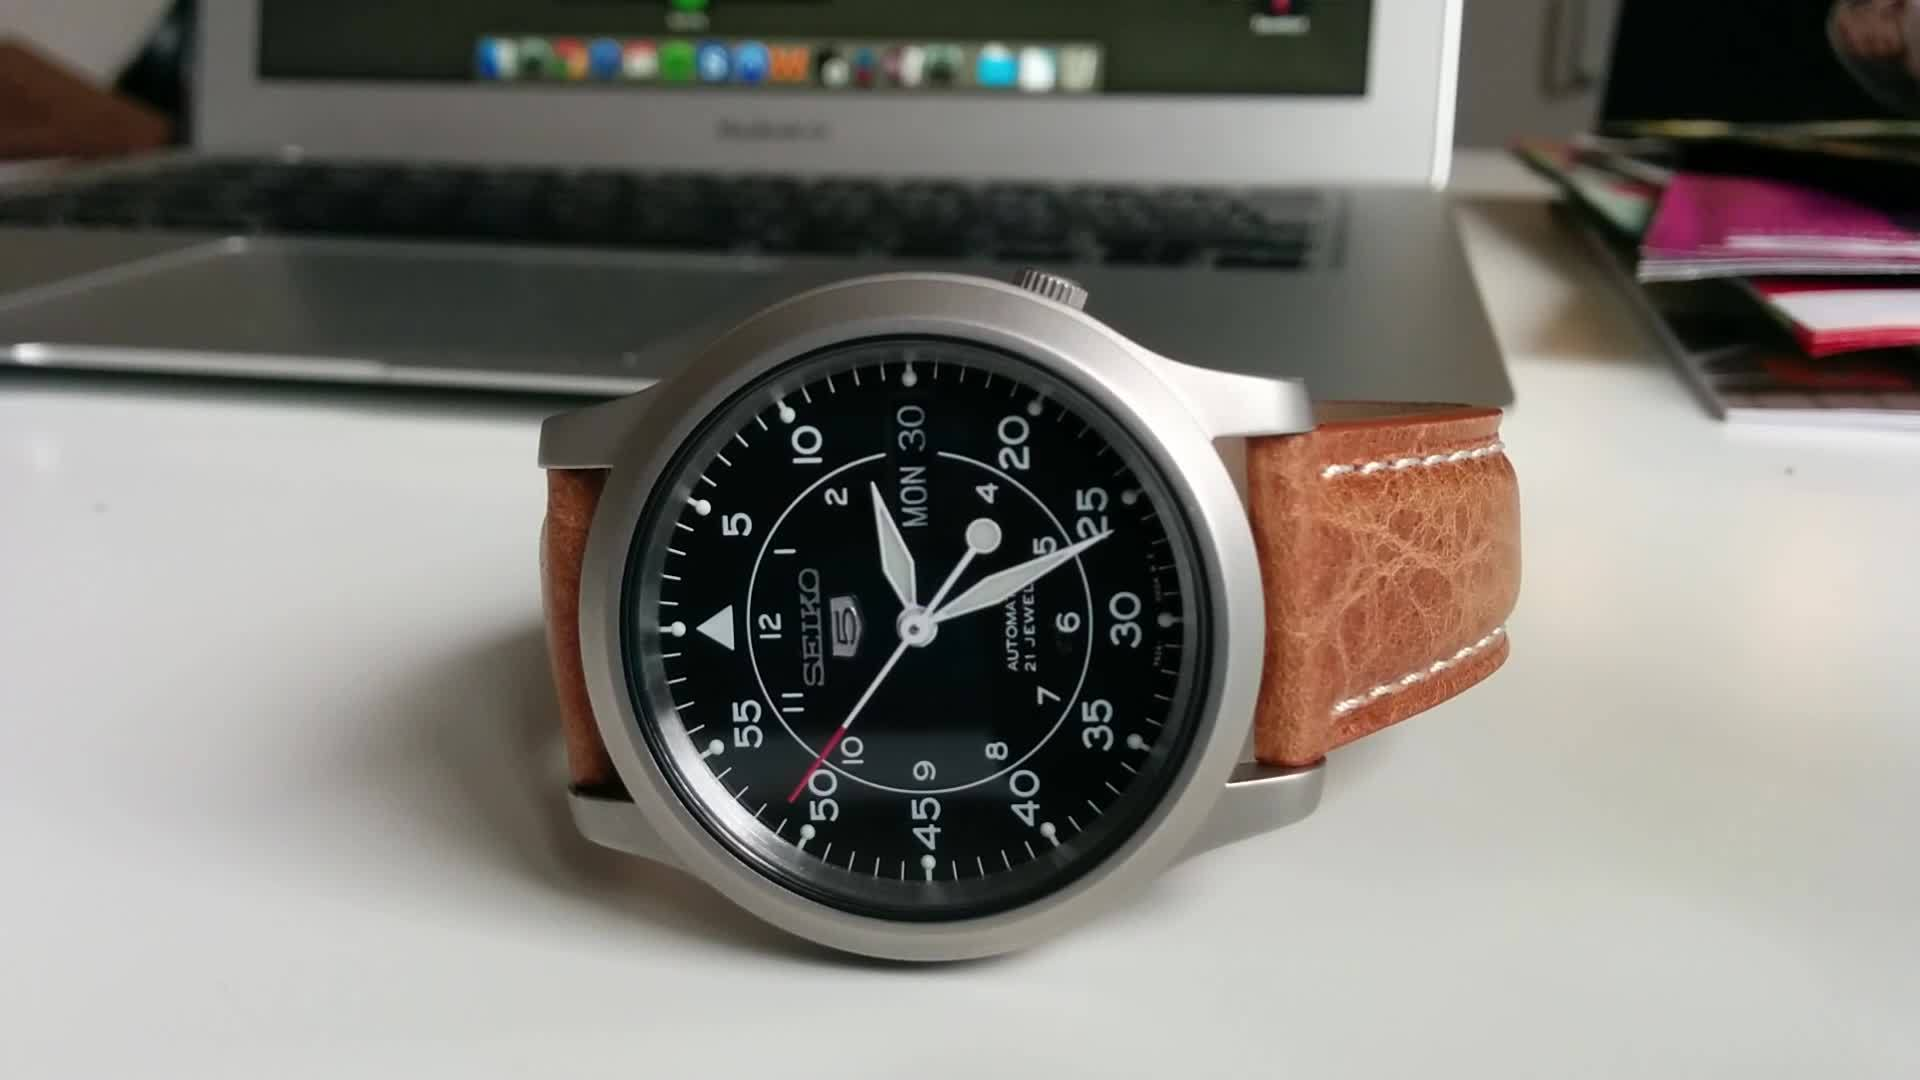 Watches, watches, [Seiko] 5 SNK809 finally came in and i could no be happier. (reddit) GIFs